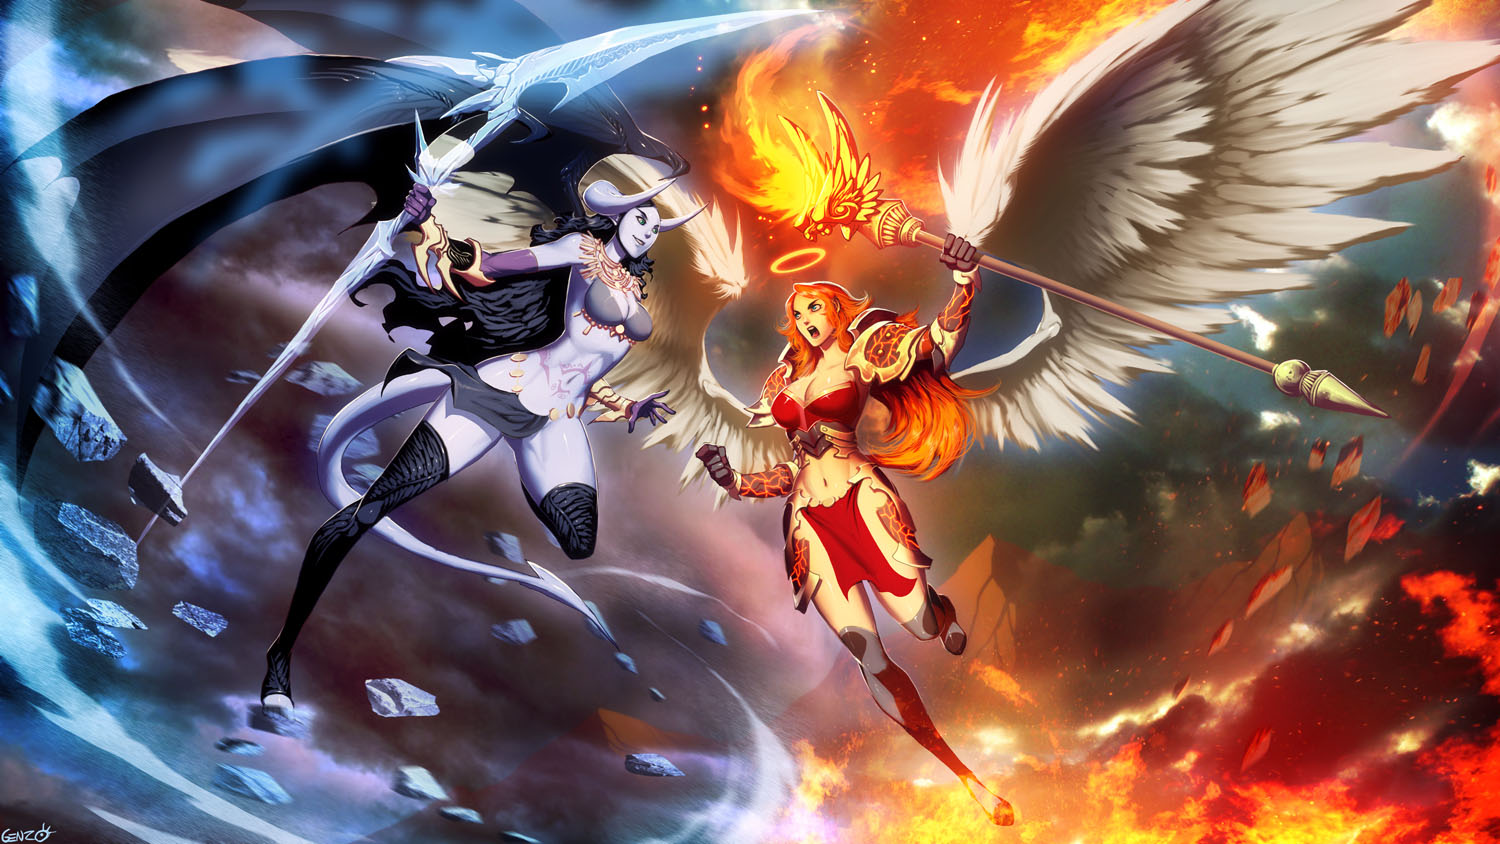 Galeria de Arte: Ficção & Fantasia 1 - Página 3 Ice_demon_vs_fire_angel_by_genzoman-d69vqkw